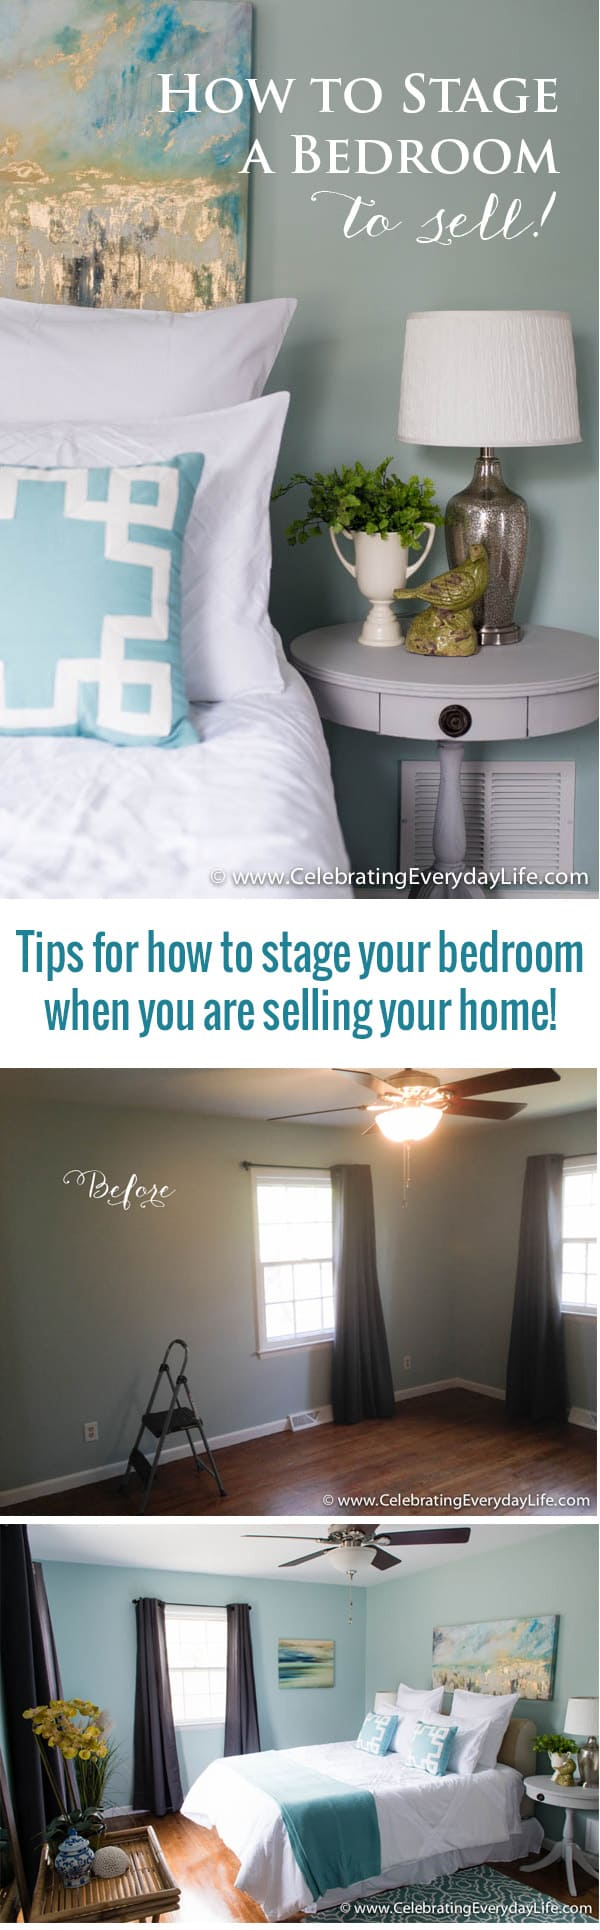 Tips for How to Stage a Bedroom to sell! Home staging